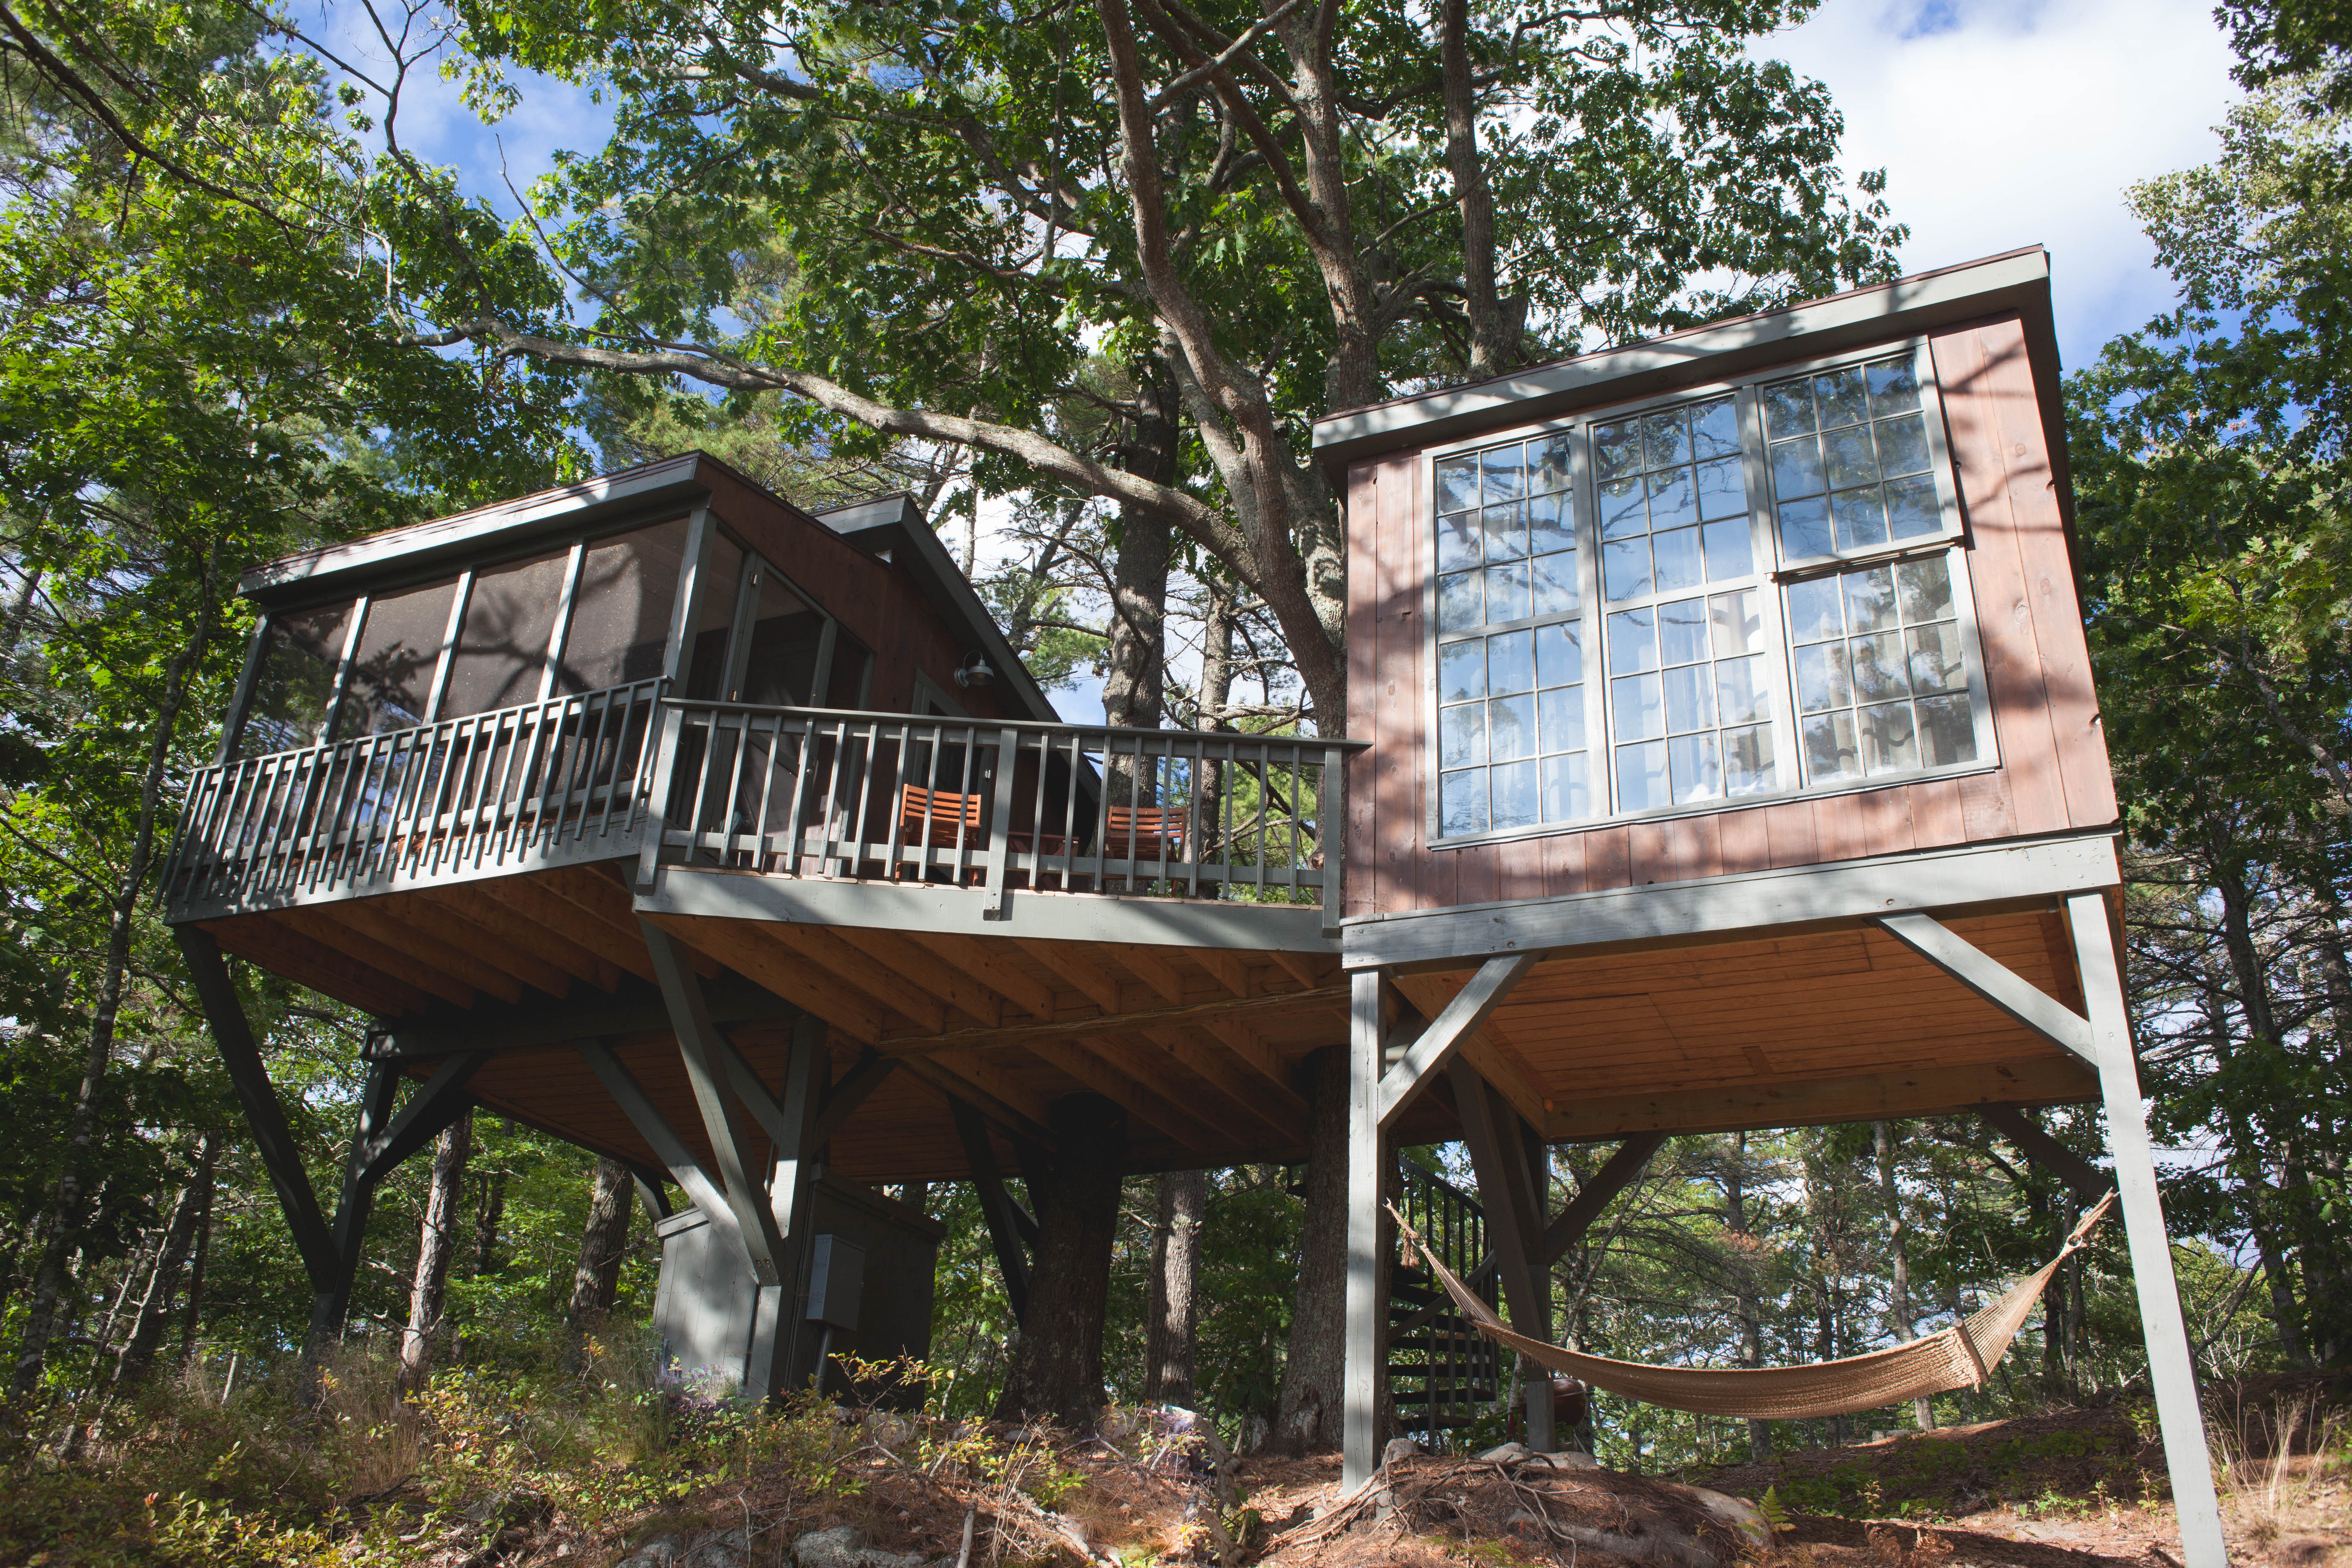 for waterfront maine steuben point cottages me lot gouldsboro llc listing sale the rd christopher group